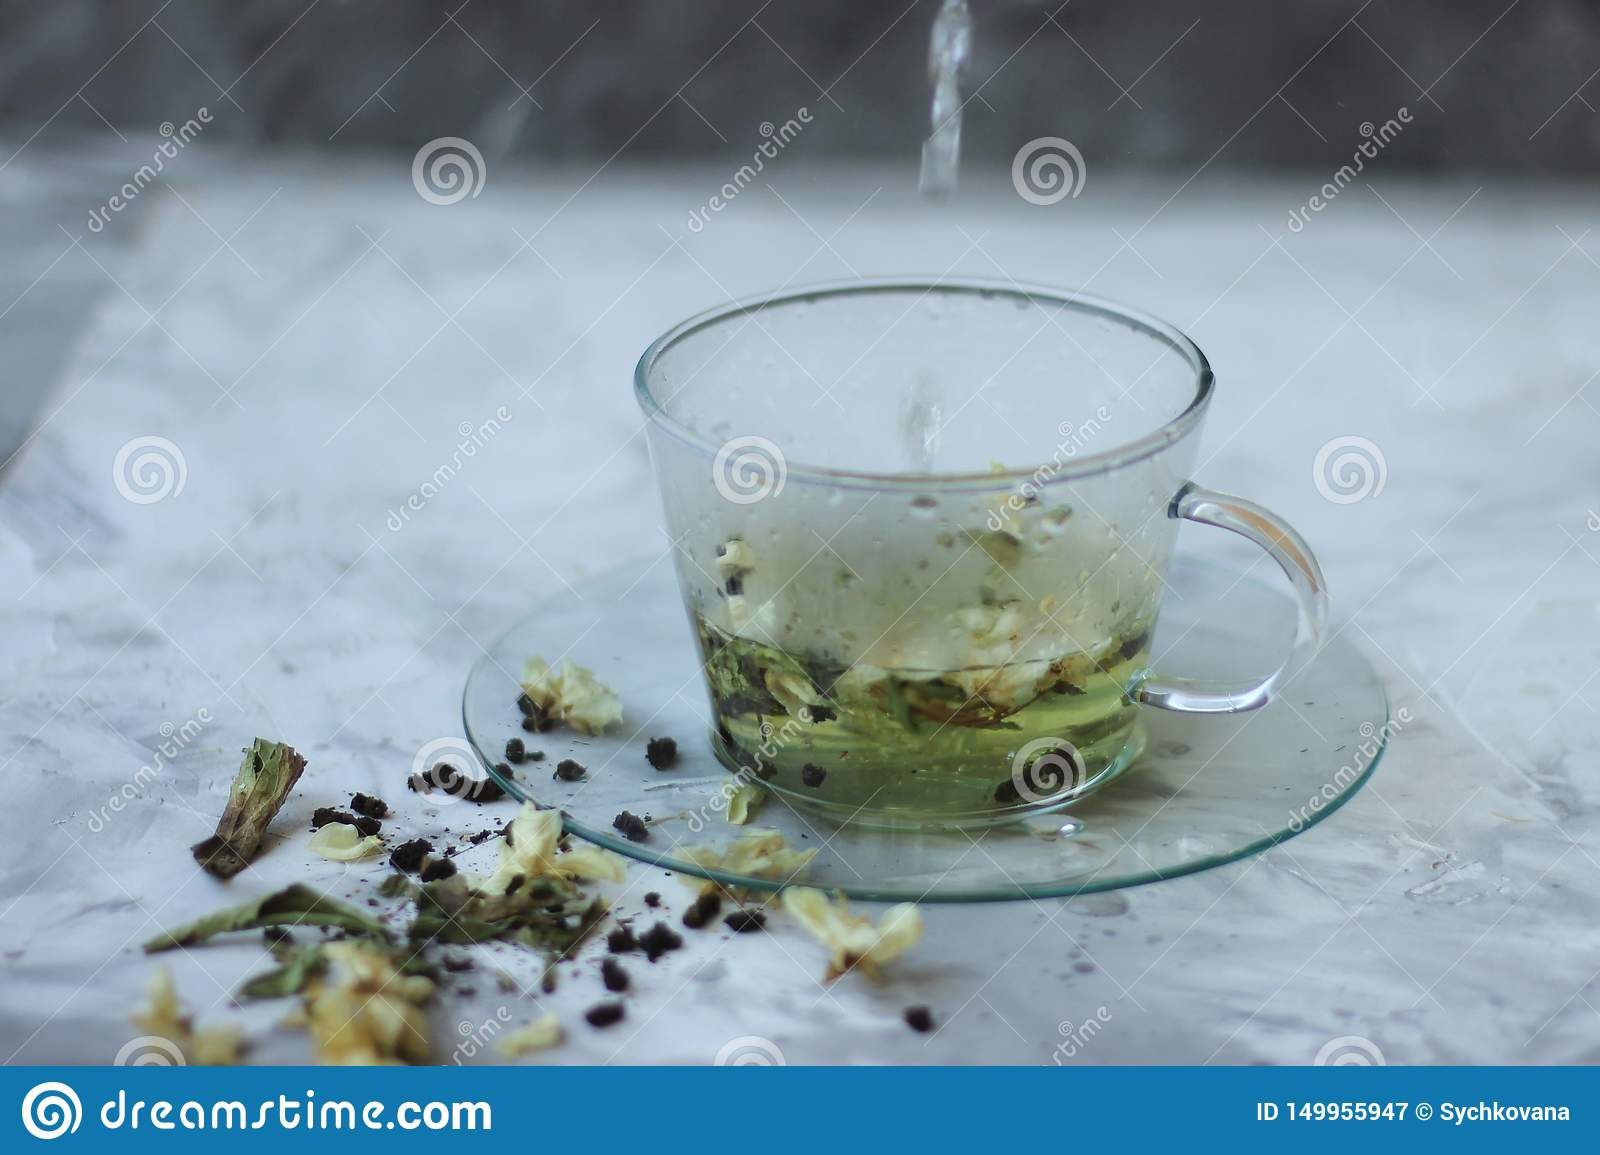 Detox food and drink healfhy lifestyle concept. Glass cup of green tea with jasmine on a gray background. Close